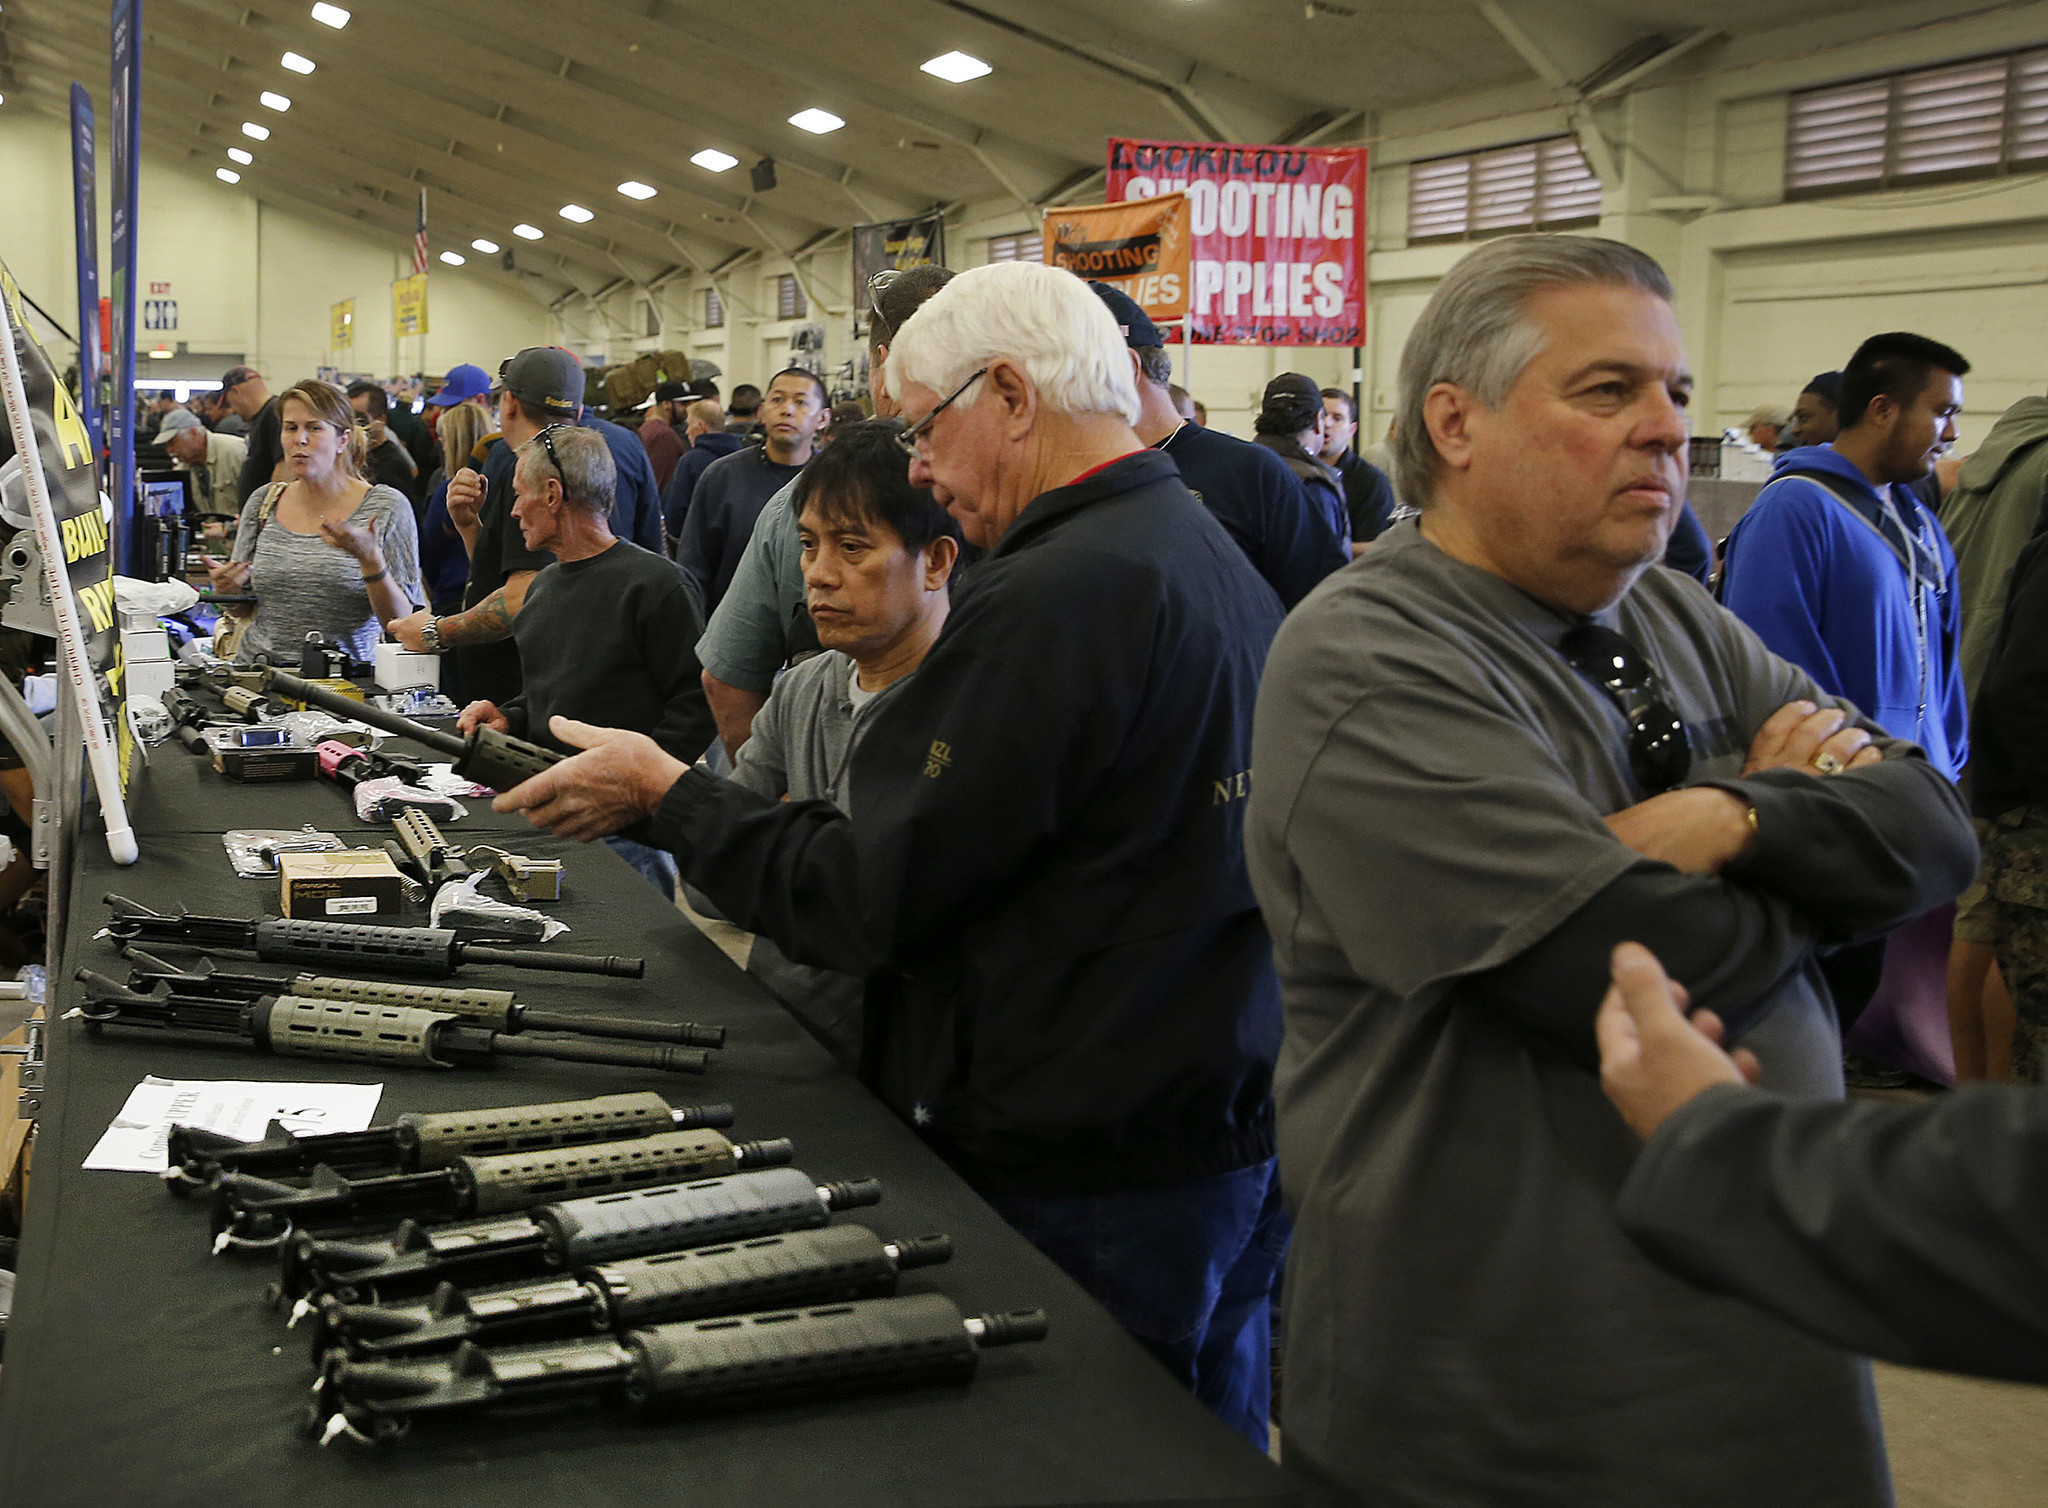 nra gun control The national rifle association is america's longest-standing civil rights organization together with our more than five million members, we're proud defenders of.